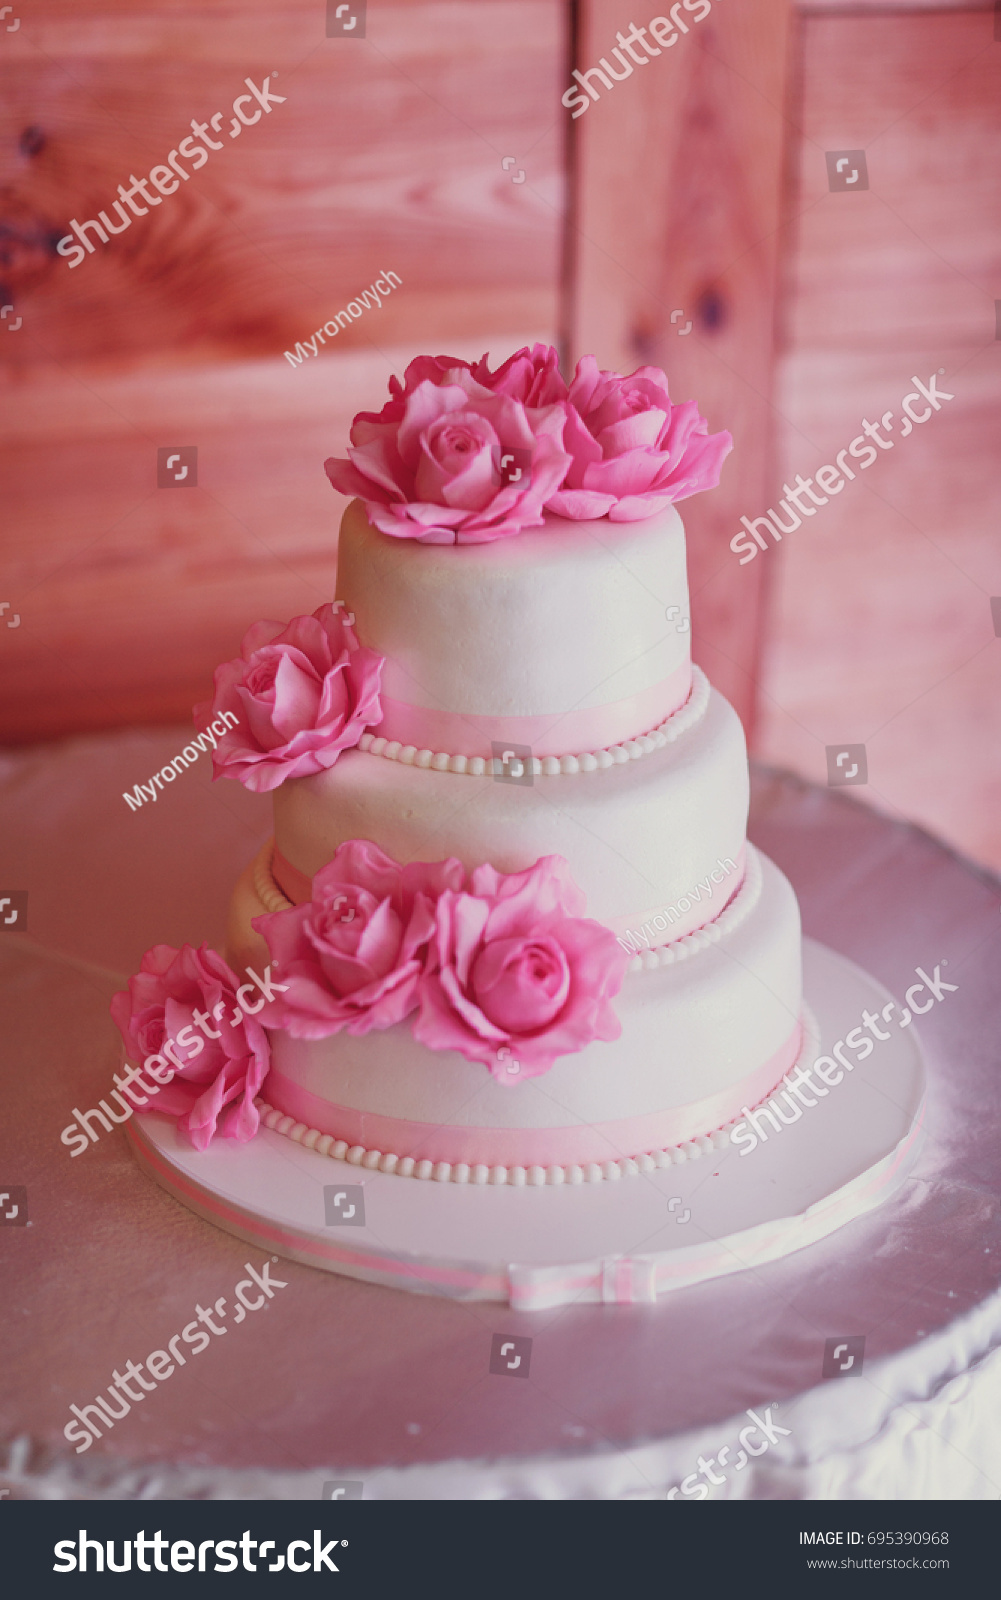 White wedding cake on wedding banquet with red rose and other ...